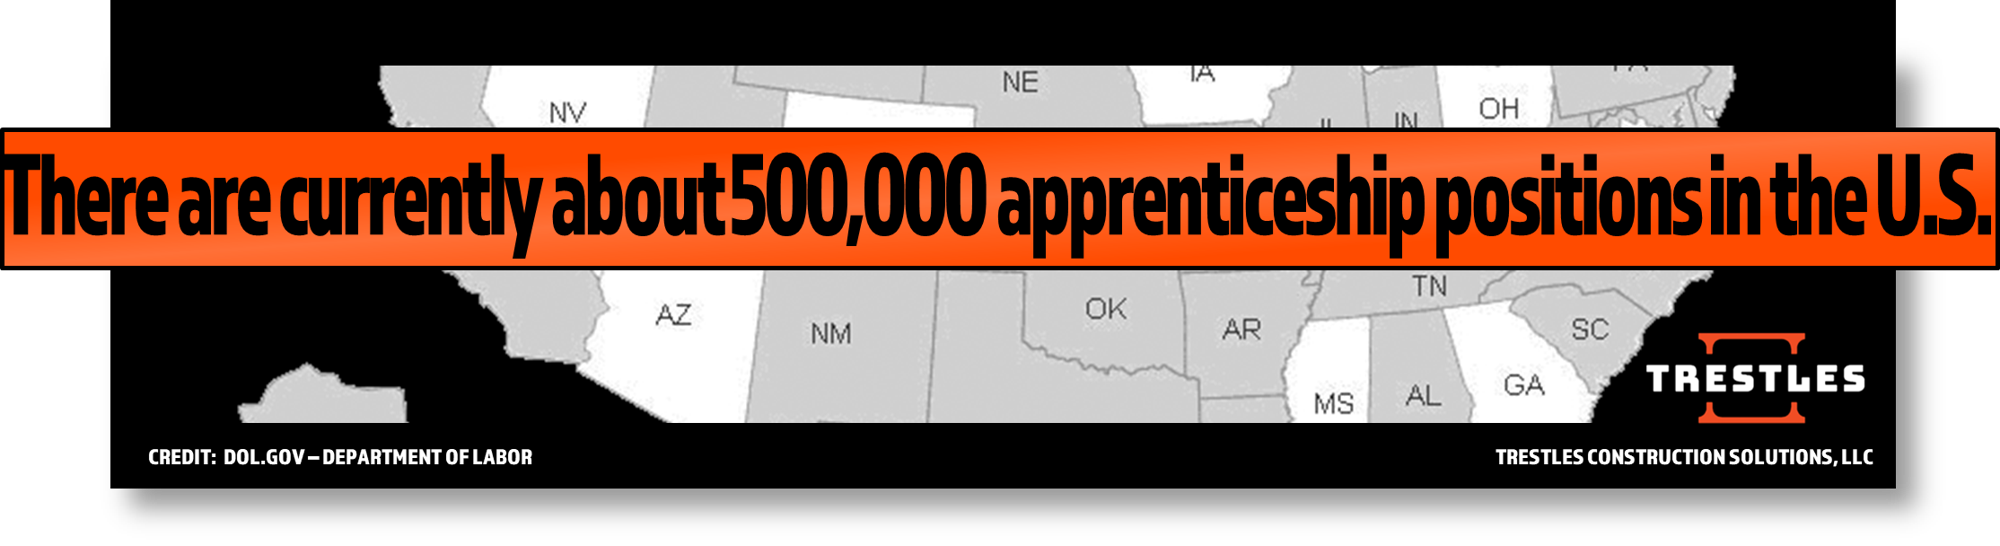 TRESTLES - There Are Approximately 500,000 Available Apprenticeships Across The USA, July 2017